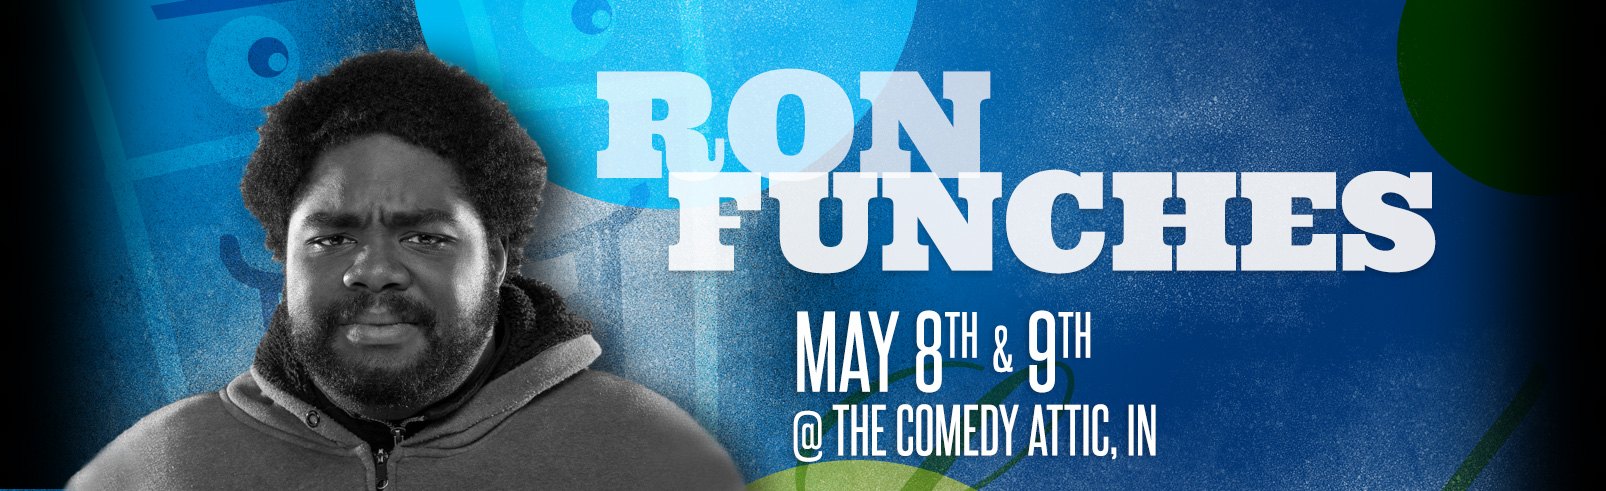 Ron Funches @ The Comedy Attic